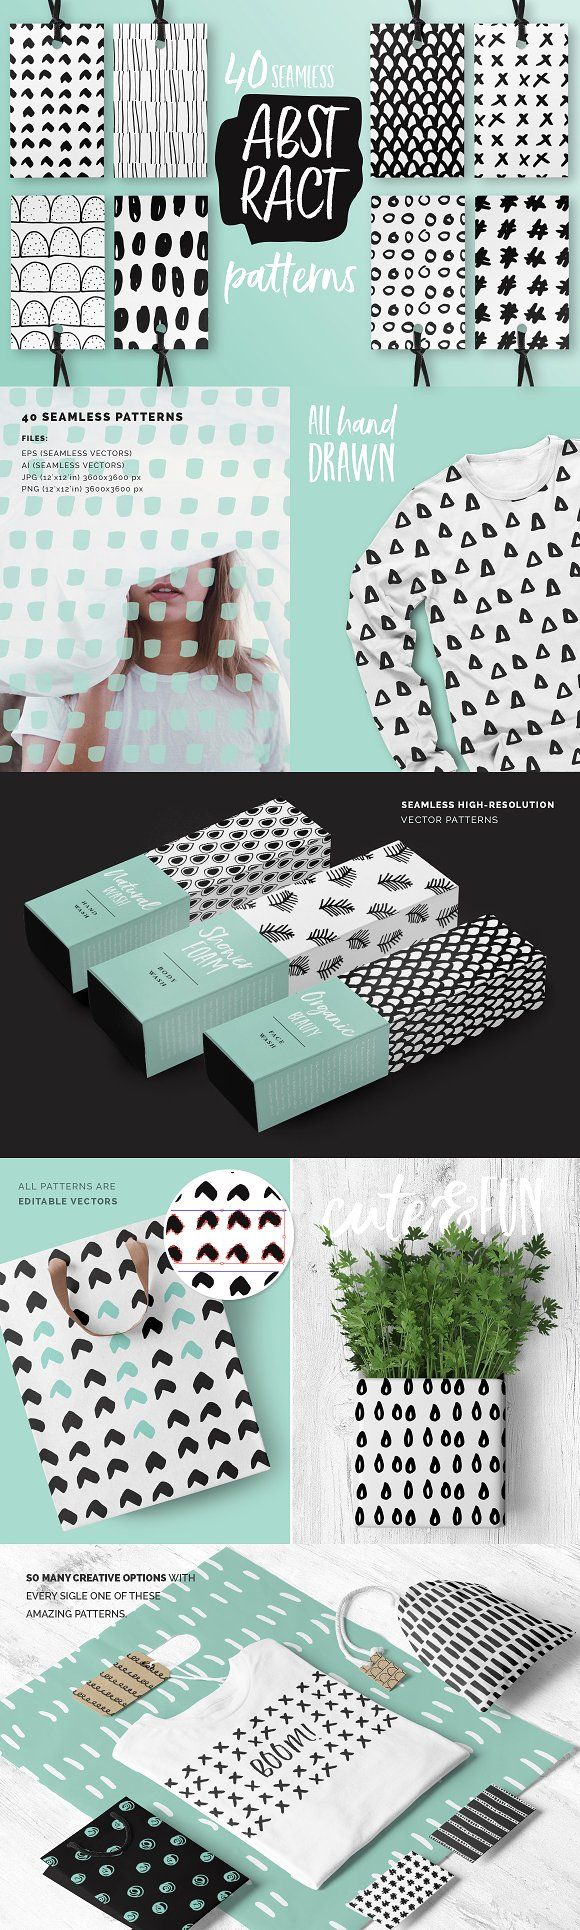 Abstract Seamless Patterns by Youandigraphics on @creativemarket